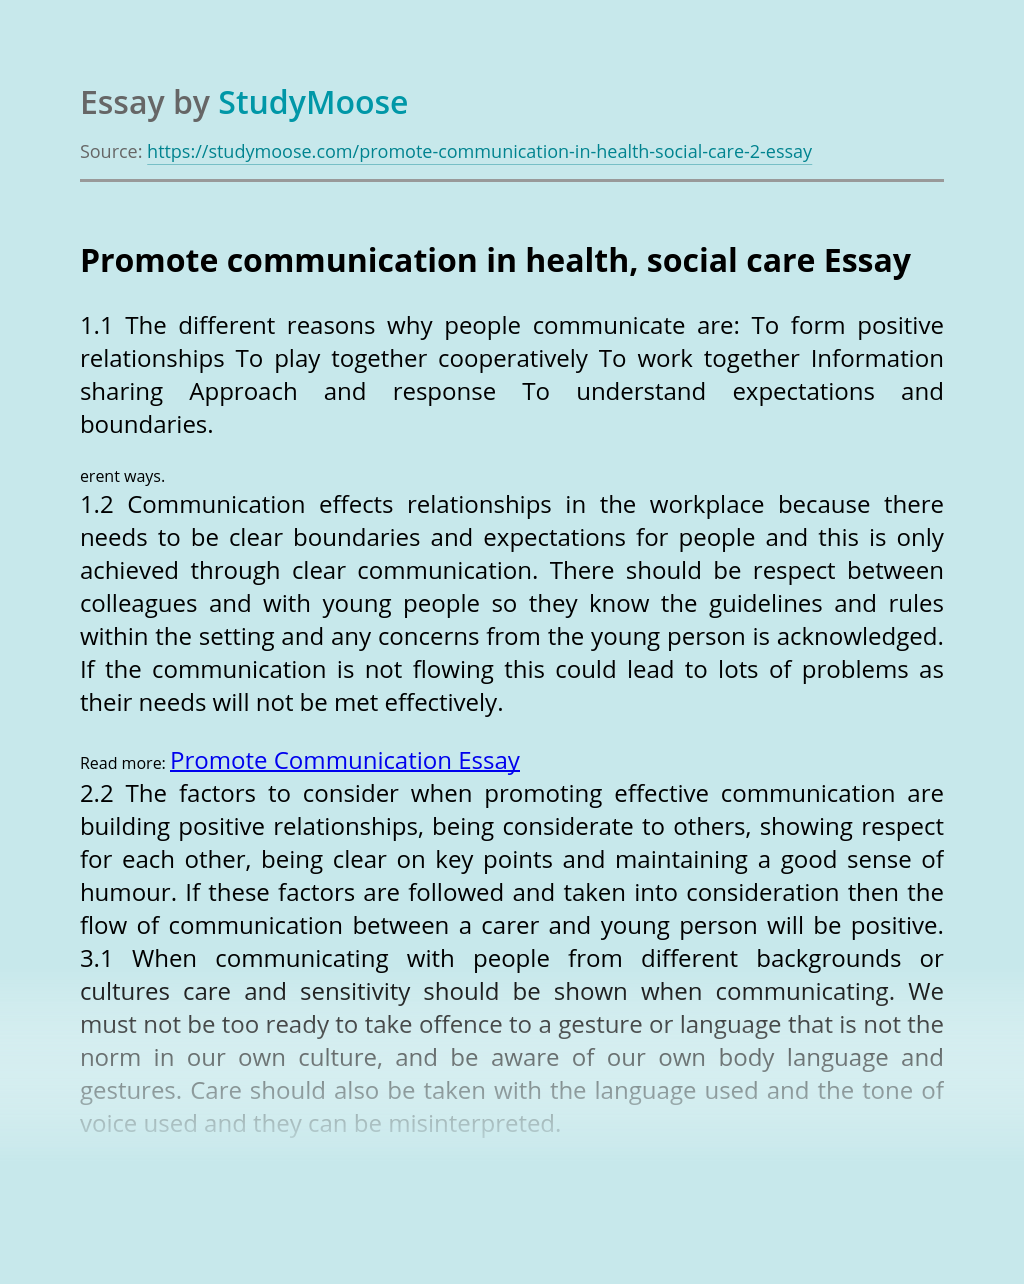 Promote communication in health, social care